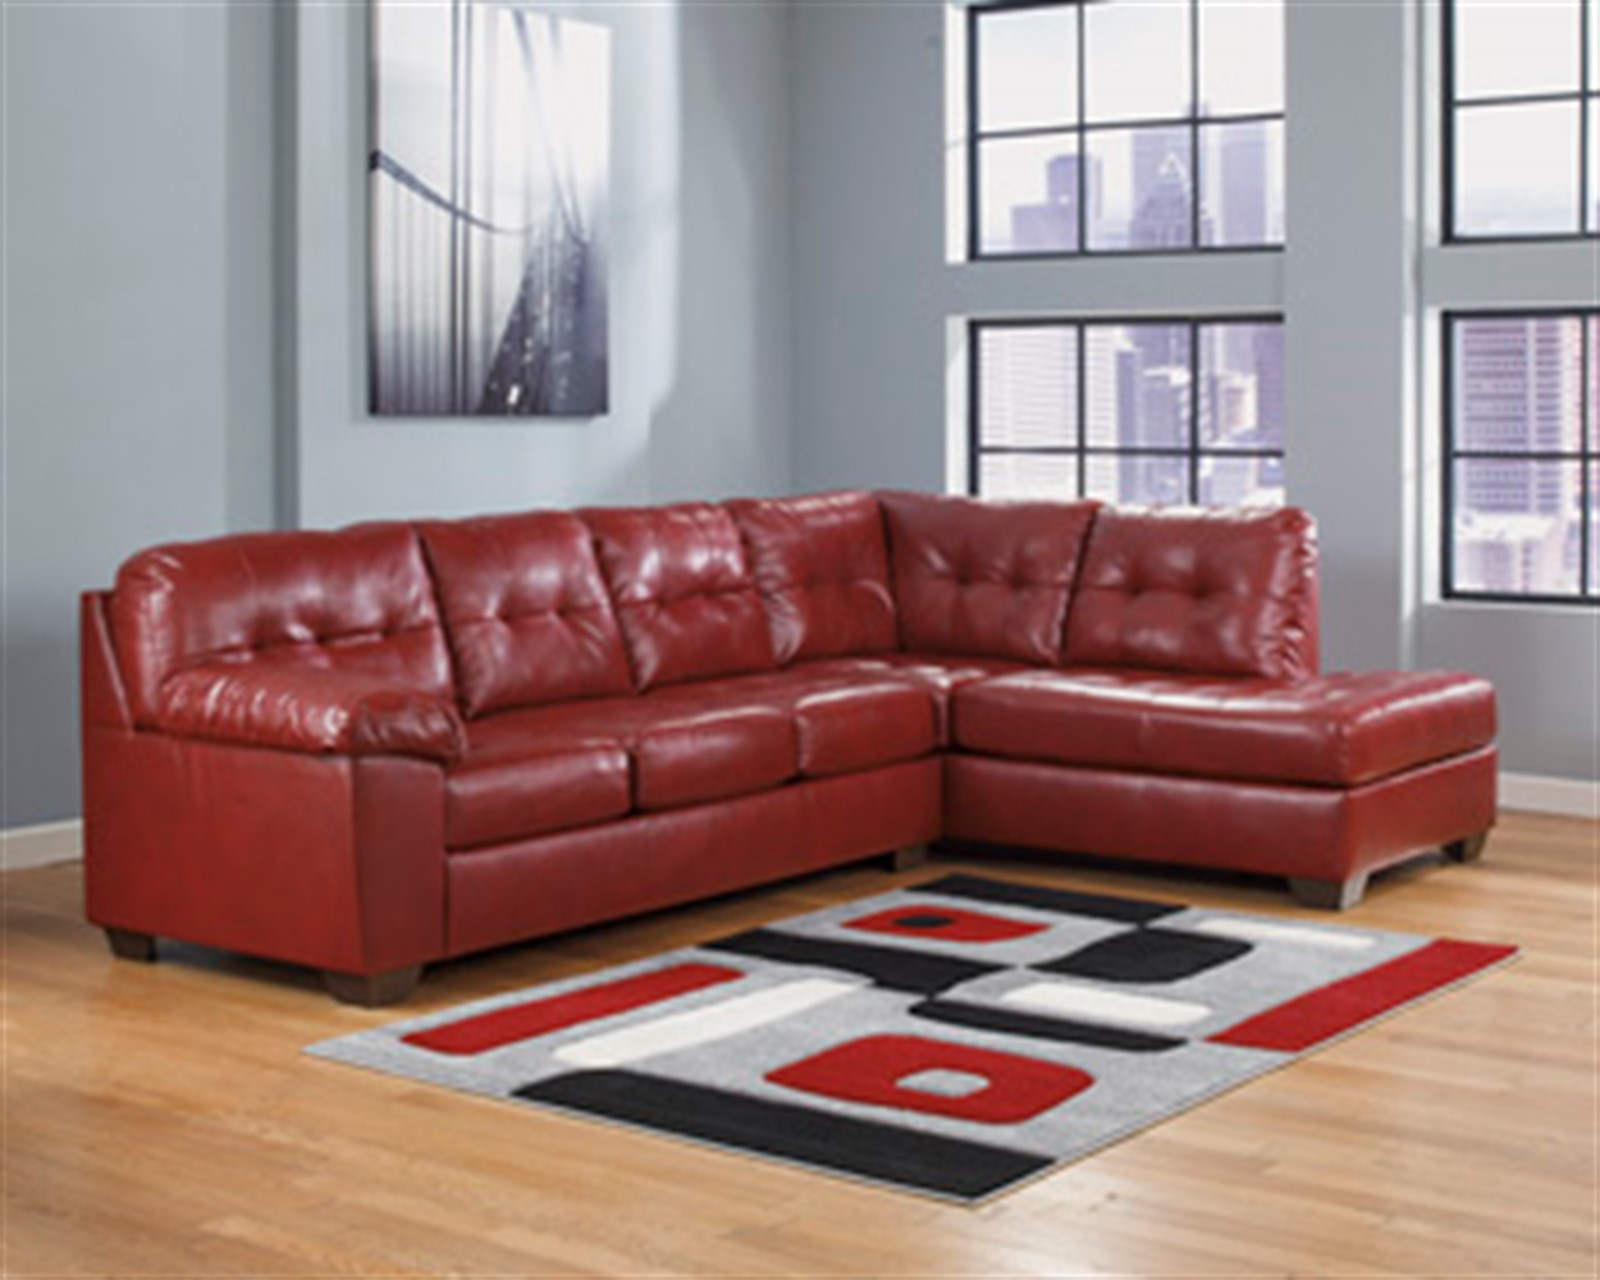 Signature Design by Ashley Alliston DuraBlend® Salsa Sectional